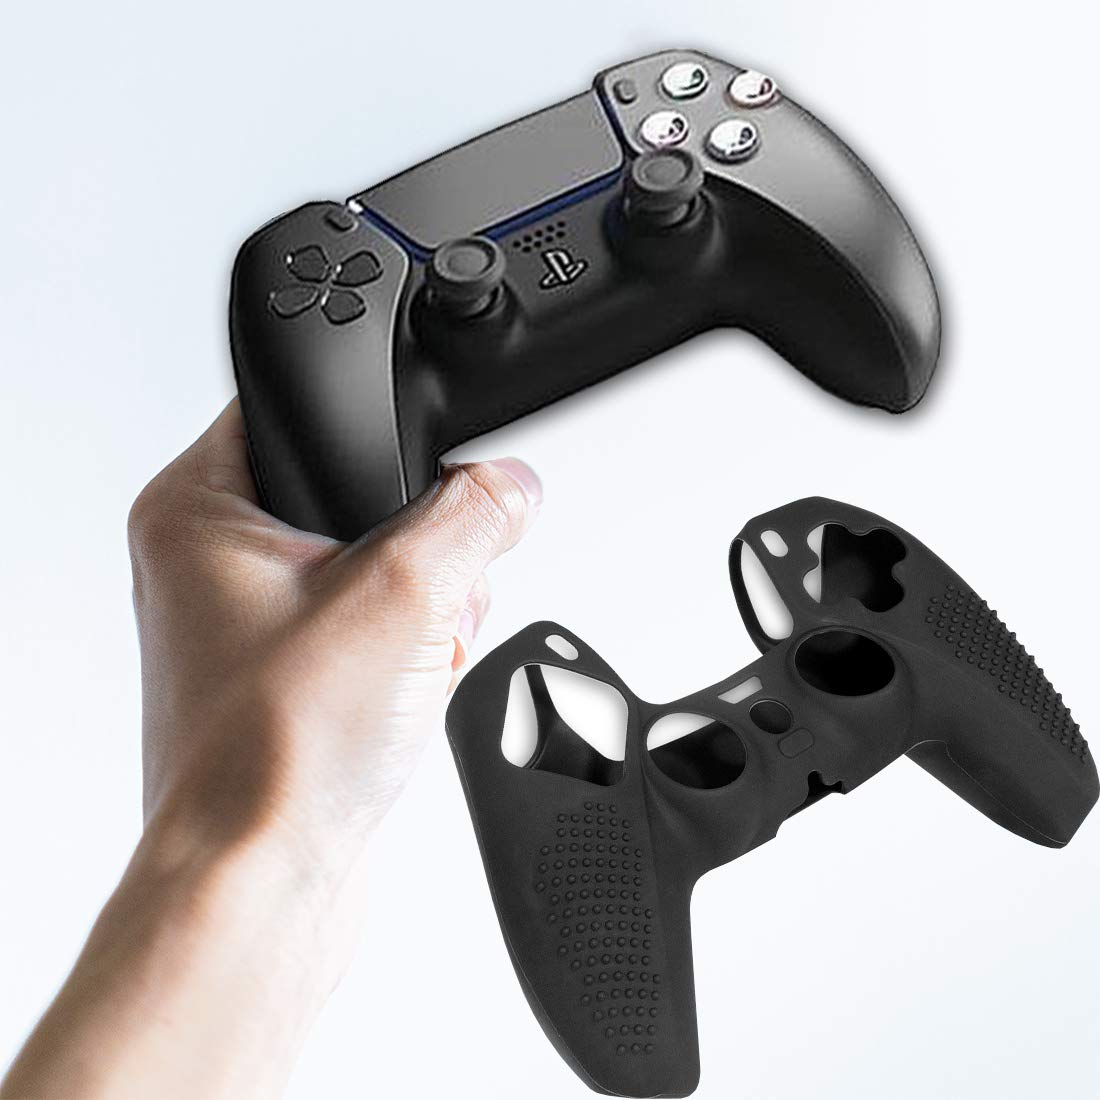 Amazon.com: PS5 Controller Skin, Silicone Cover for GamePad Anti-Slip Grip  Silicone Cover Protector Case Compatible with PS5 Gamepad Controller(Black):  Video Games